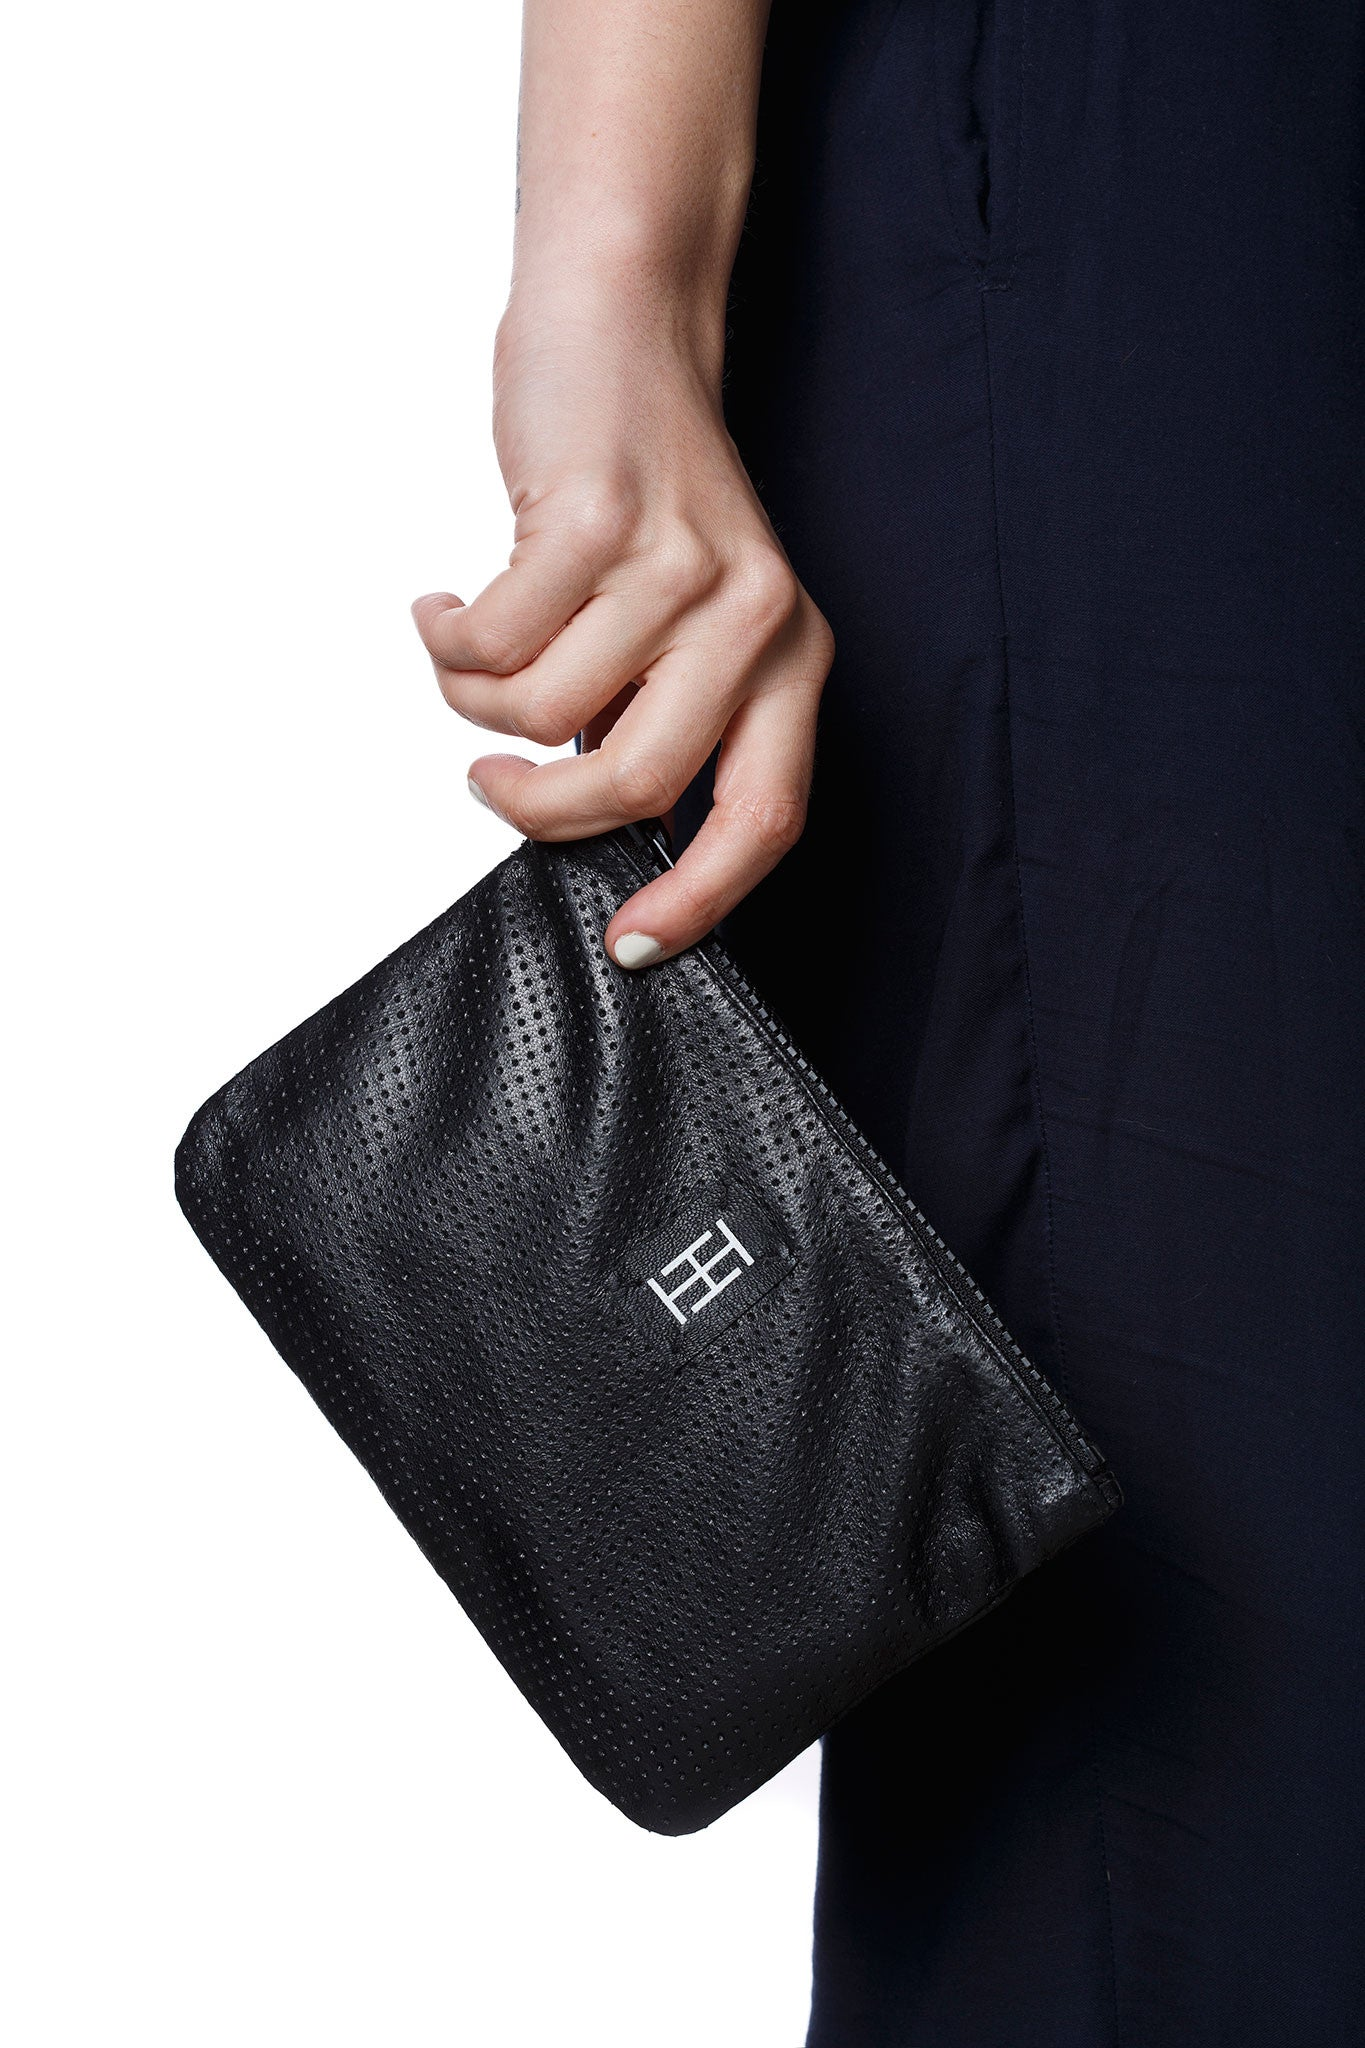 The Pouch - black leather bag